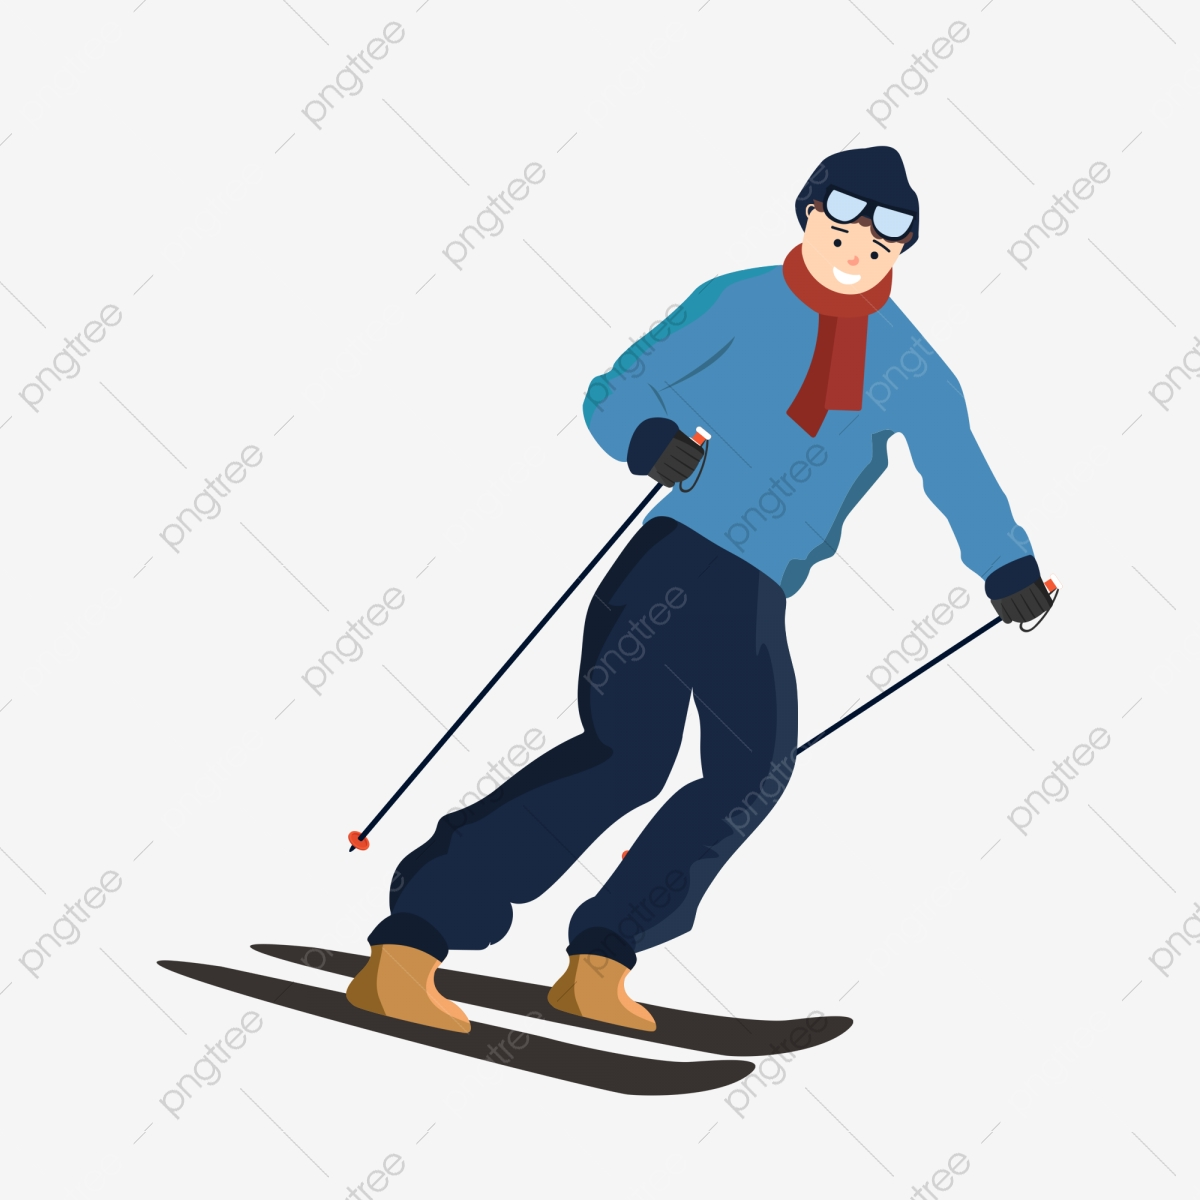 Hand Painted Snow Ski Young People, Illustration, Young Man.